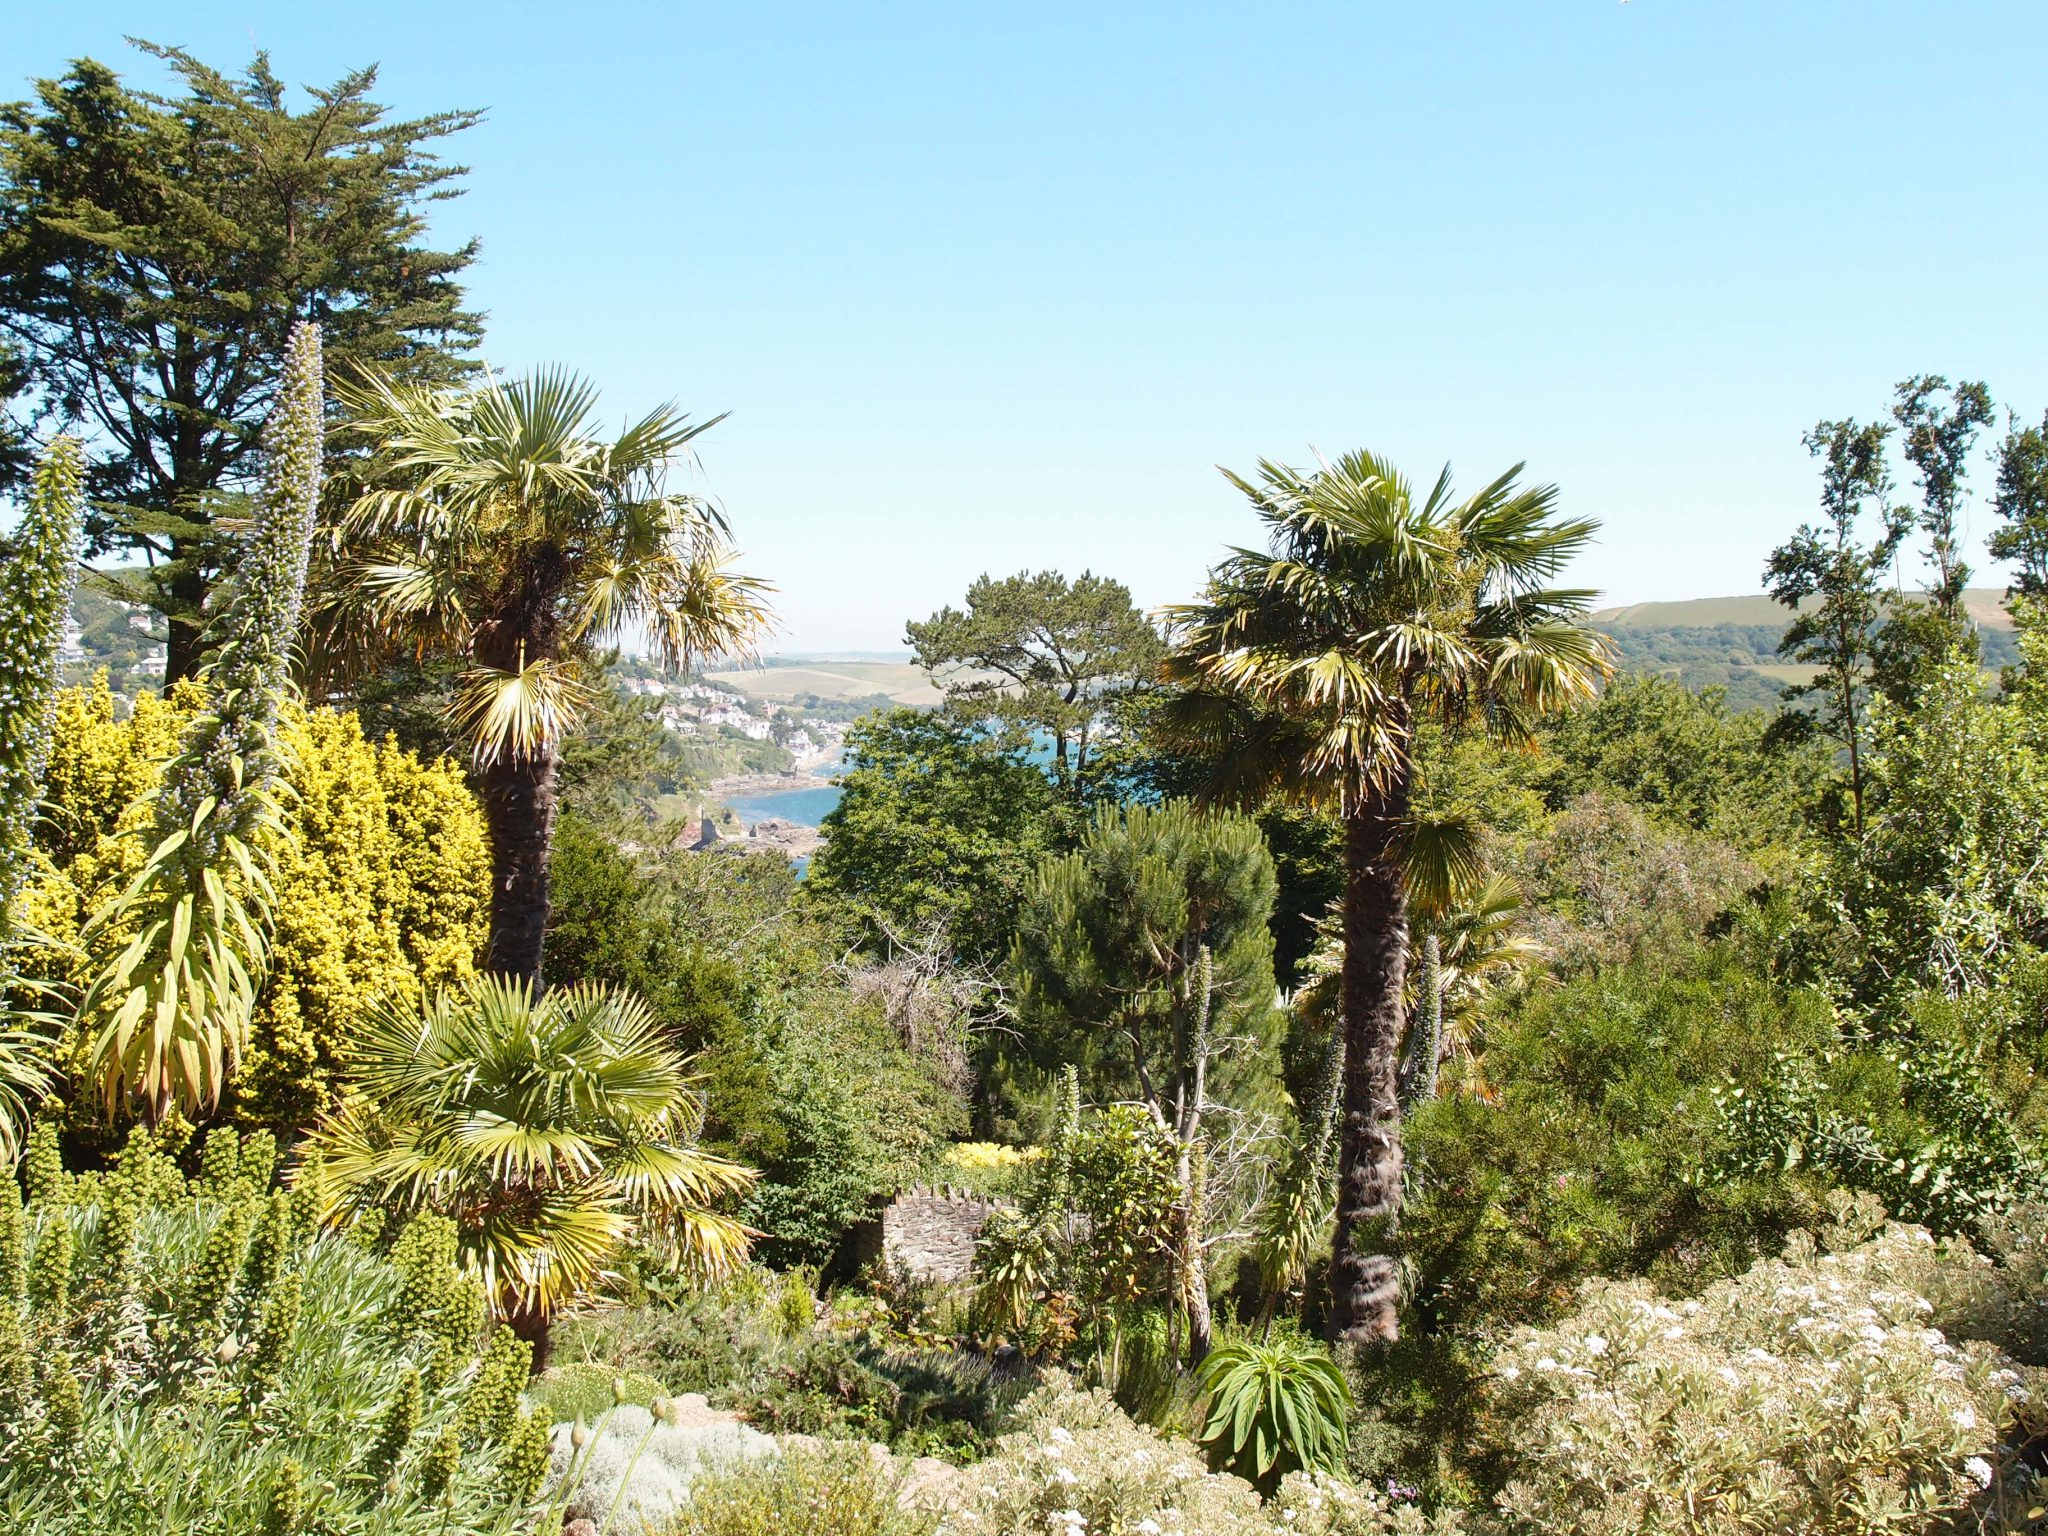 The Palm Gardens sprawl across steep, travelled banks and terraces. All of the Chusan Palms date from the 1930s, during Otto Overbeck's residency.